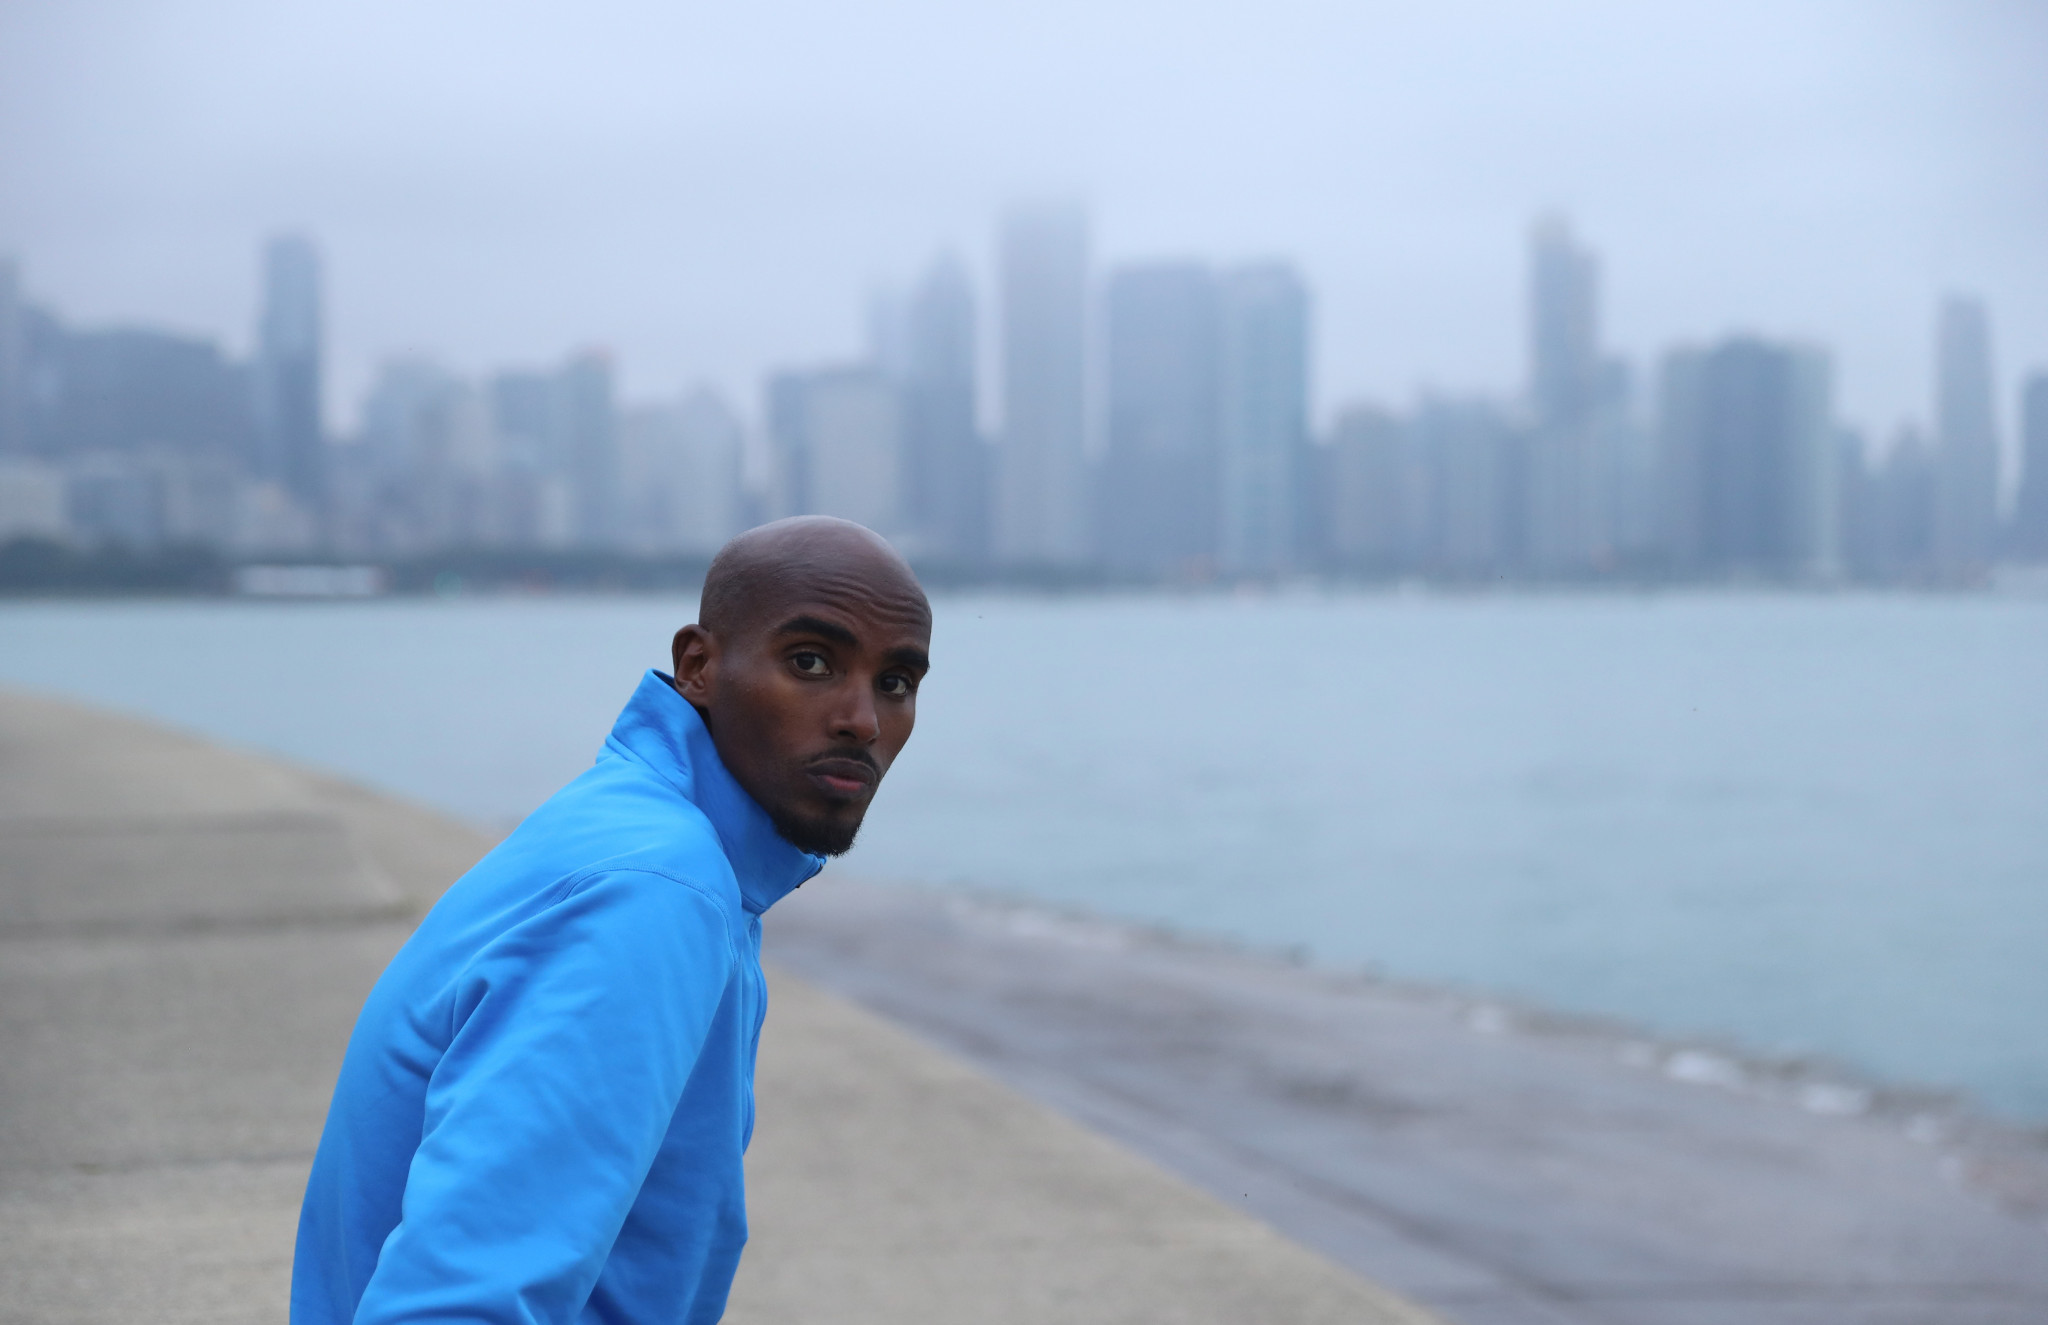 Farah and previous winners among strong start-list for Chicago Marathon